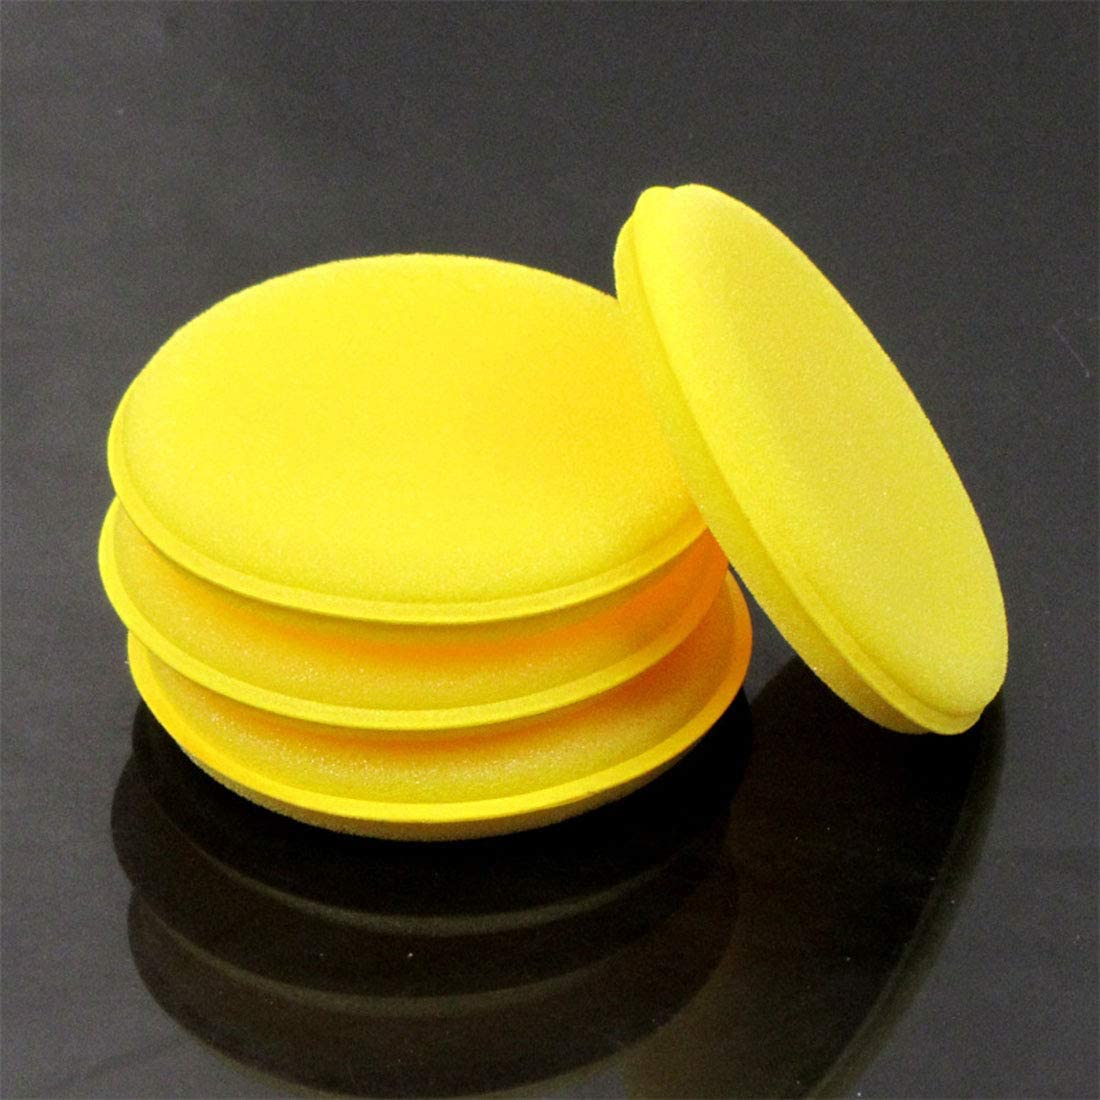 Freahap 12 Pcs Waxing Sponge Round Shaped Sponge Polish Cars Wax Applicator Pad as Picture